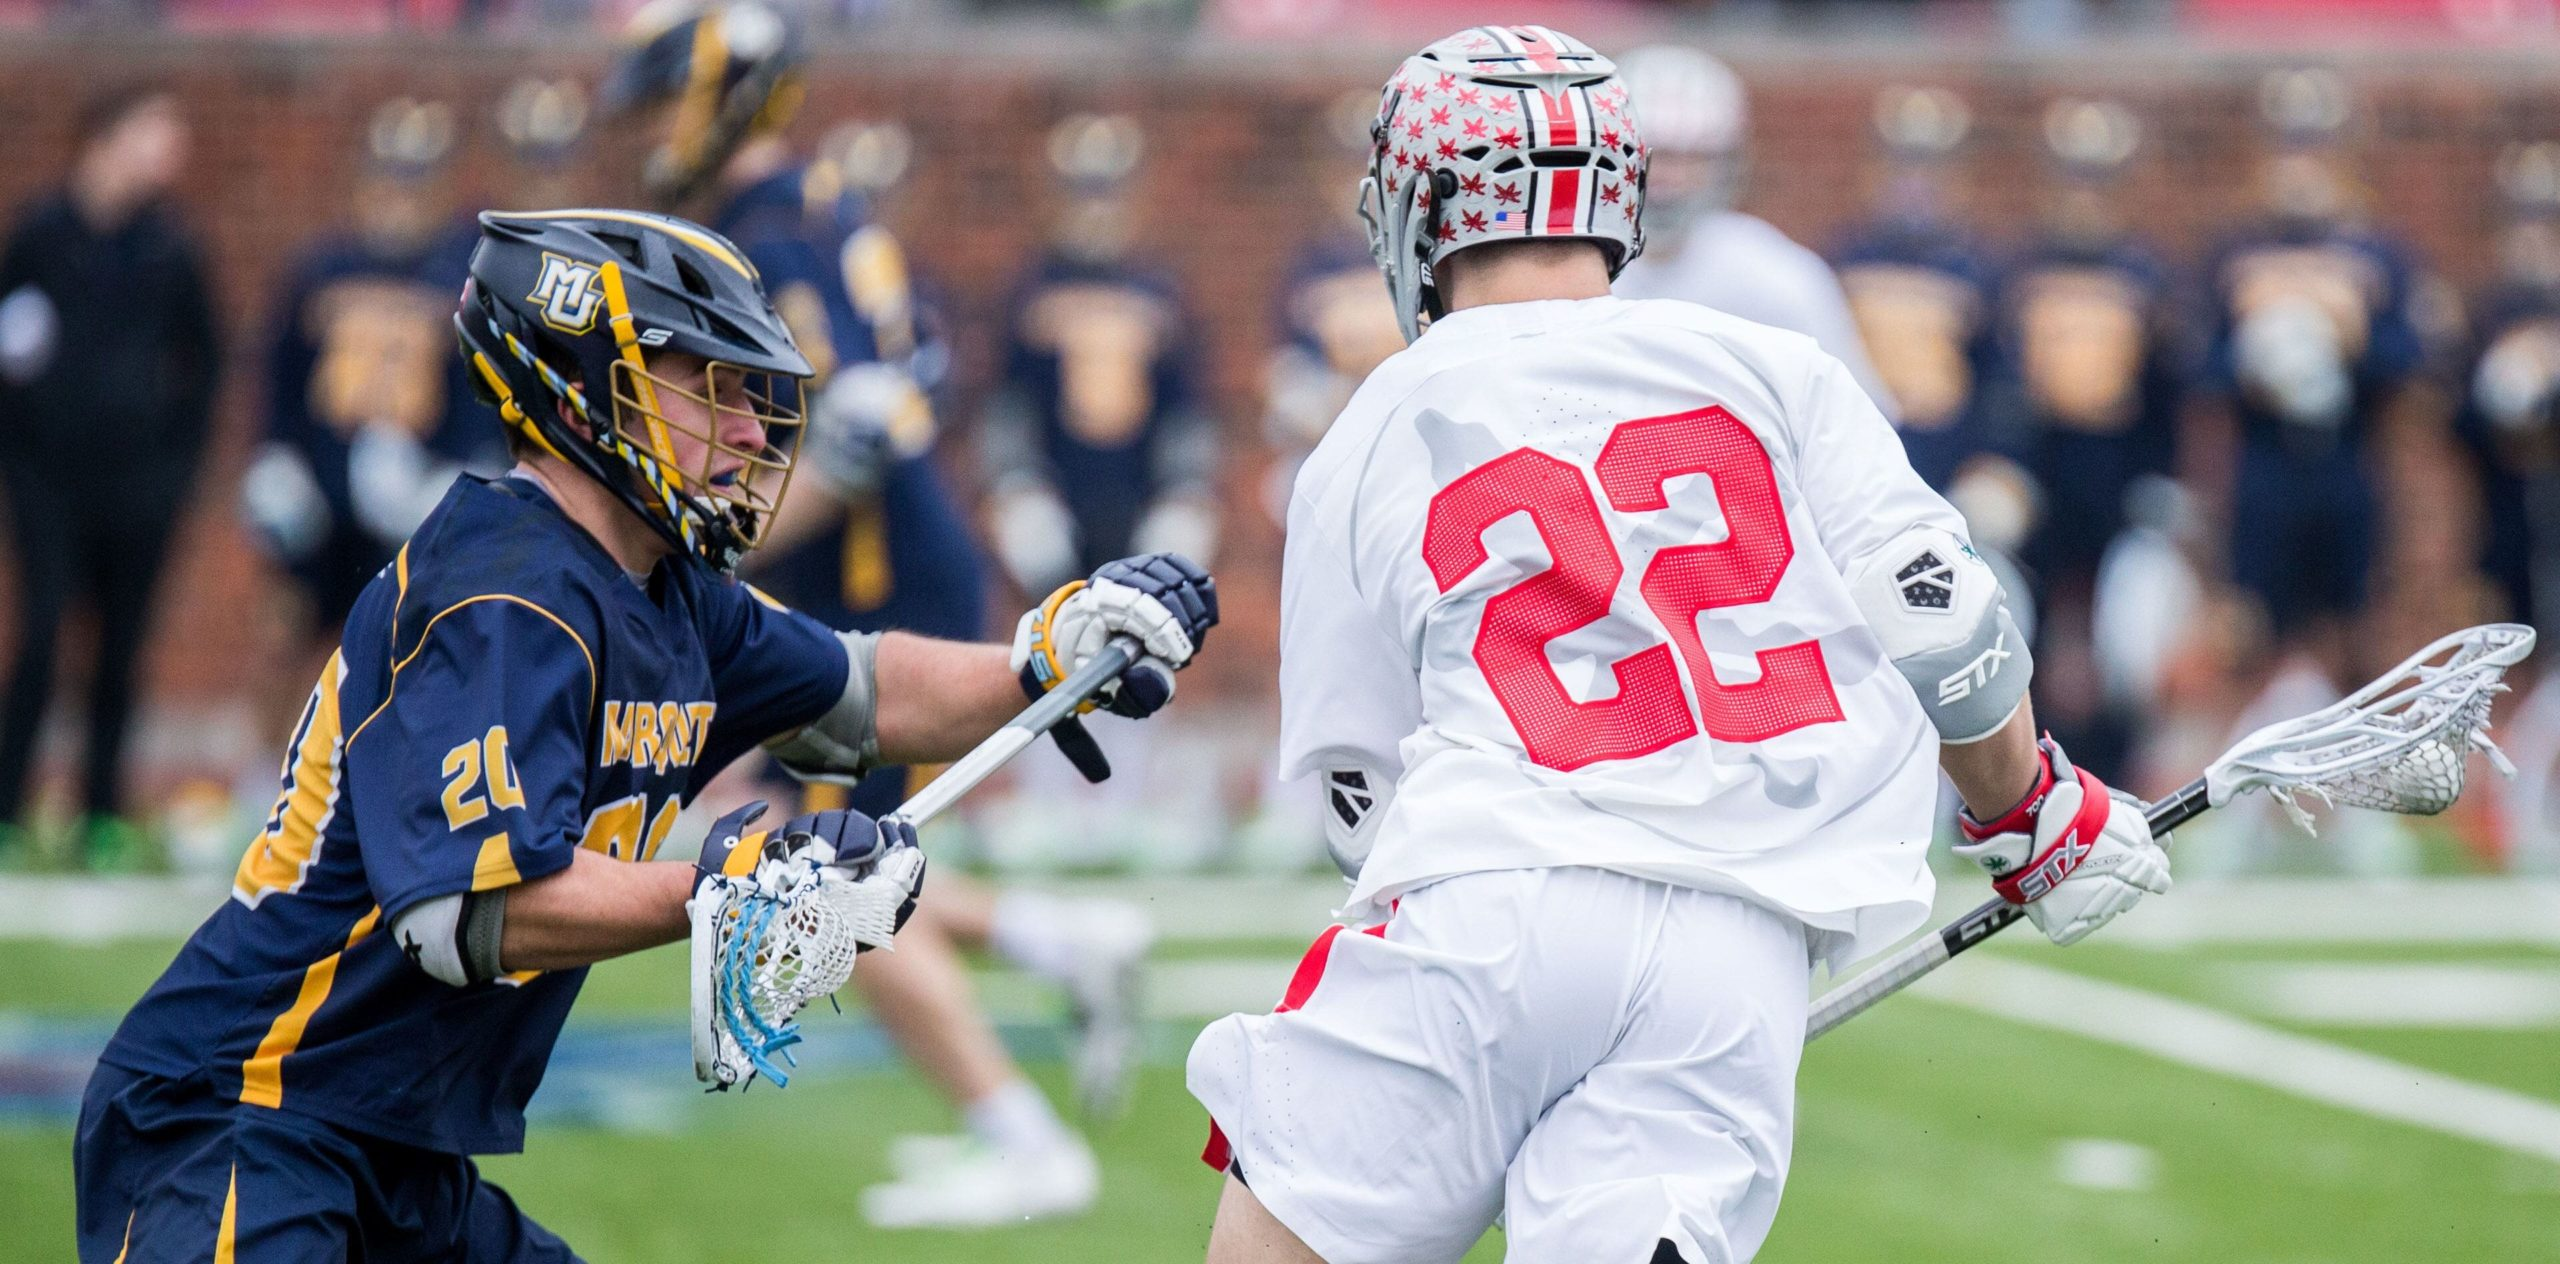 Marquette University Lacrosse Player Nick Singleton from Wheaton, Illinois